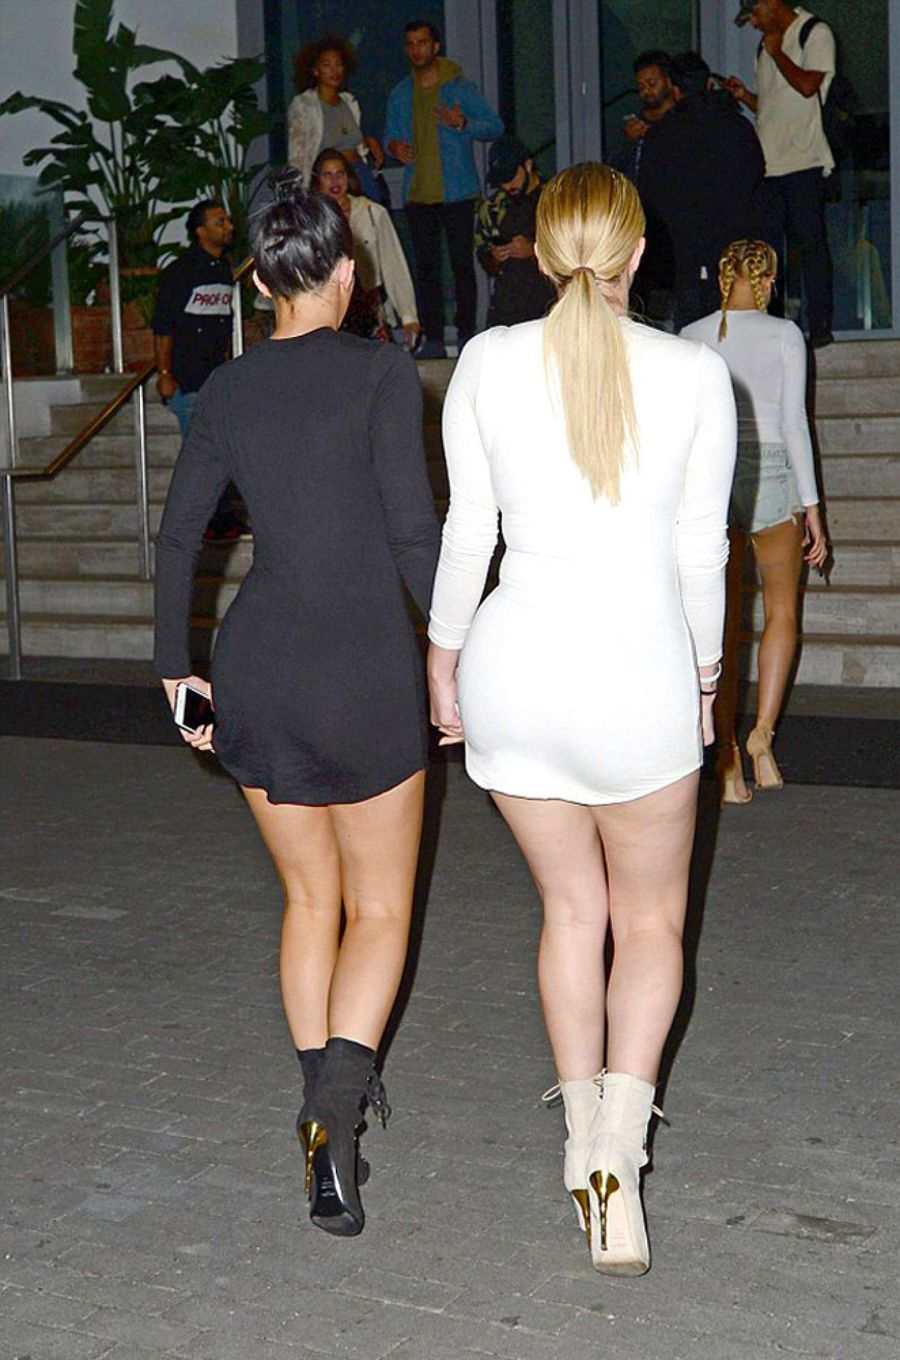 Kylie Jenner and Hailey Baldwin Out in Miami